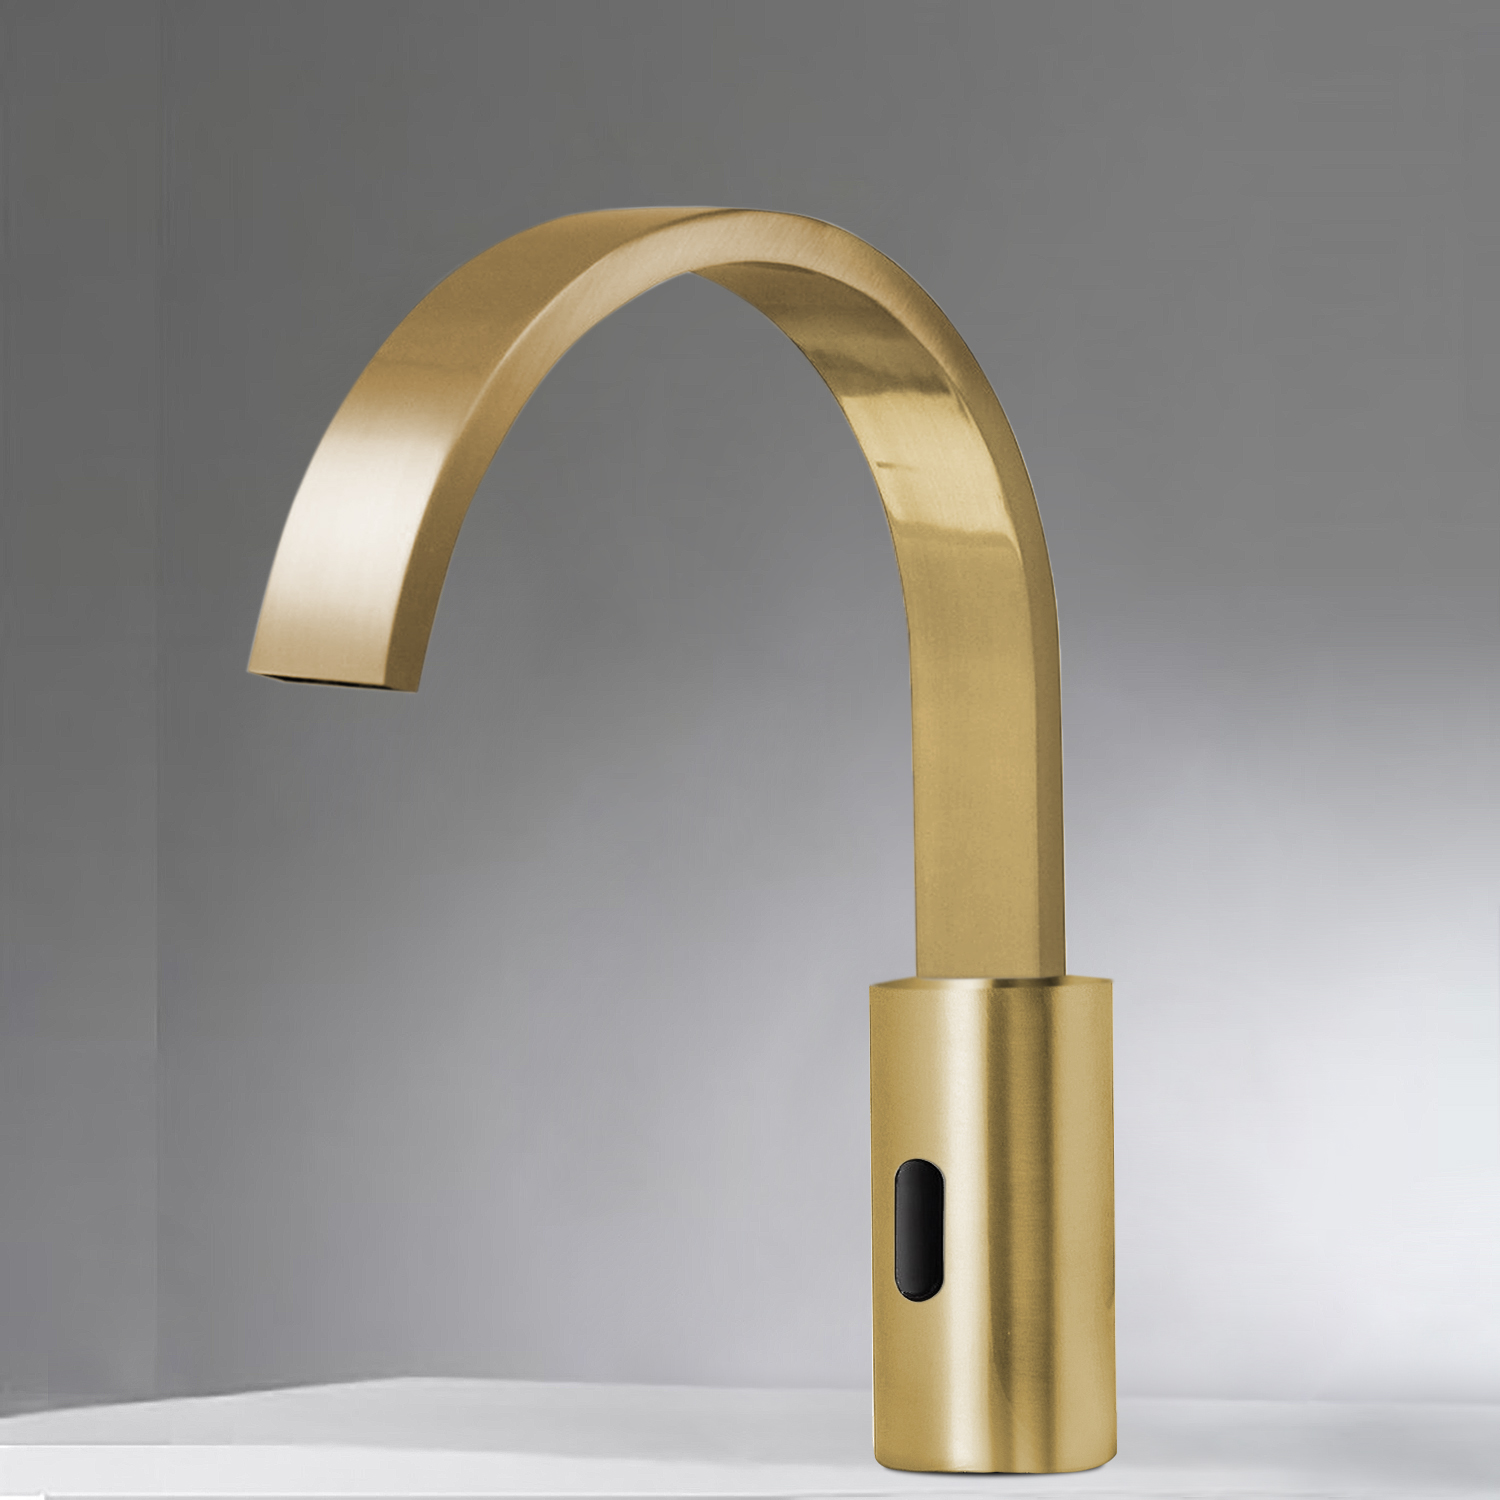 Bravat Gold Infrared Automatic Electronic Commercial Faucet